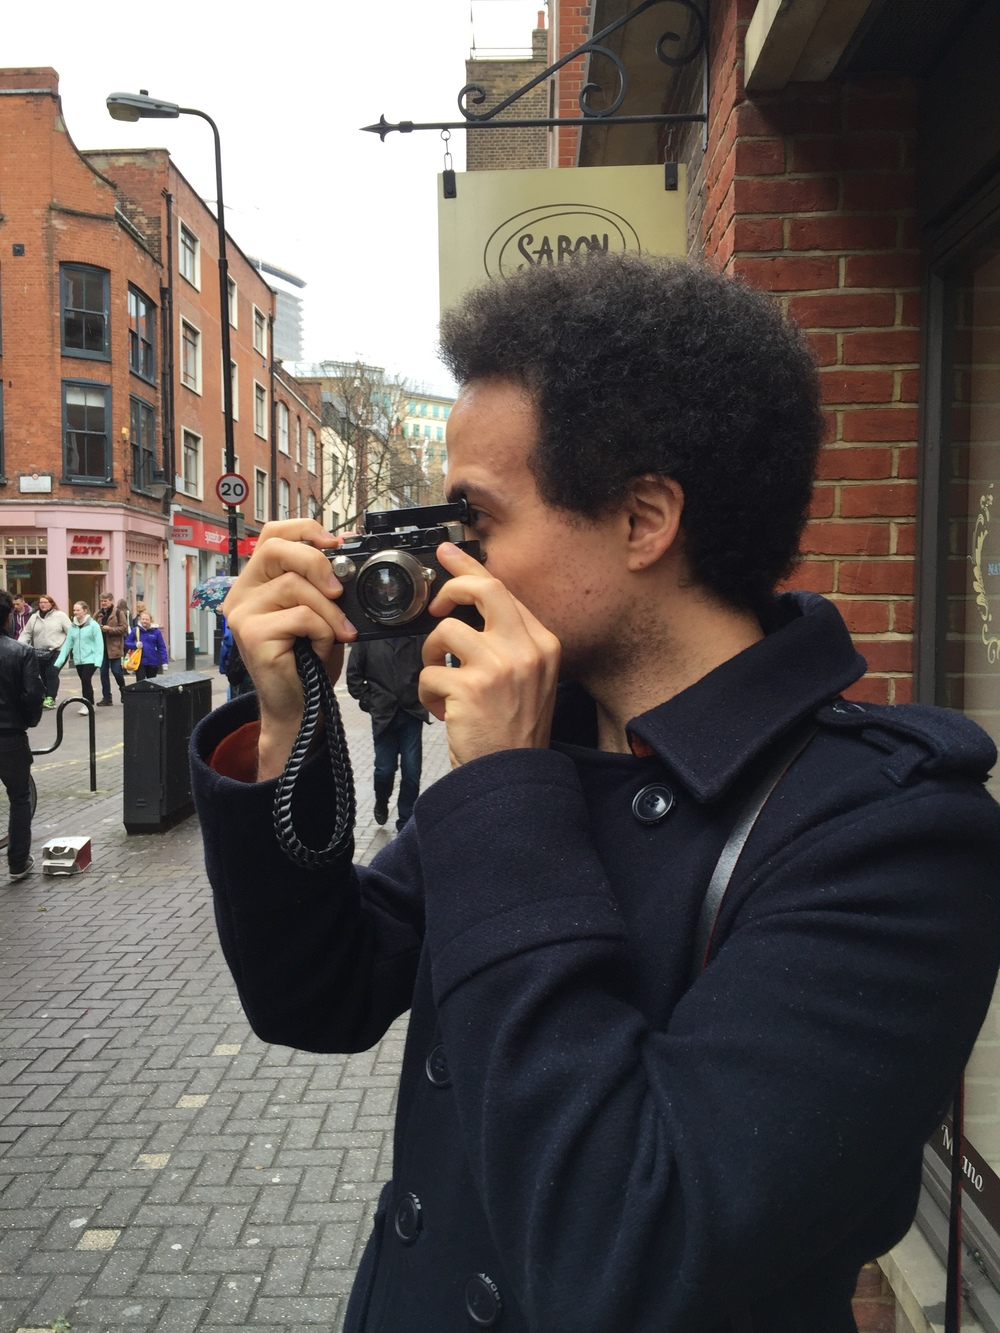 Adam takes a picture of me wielding the iPhone using the Leica's Winkelsucher. I wouldn't have known he was there, so discreet and crafty is the Leica III. Eat your heart out, Eric Kim: This is true wabi-sabi